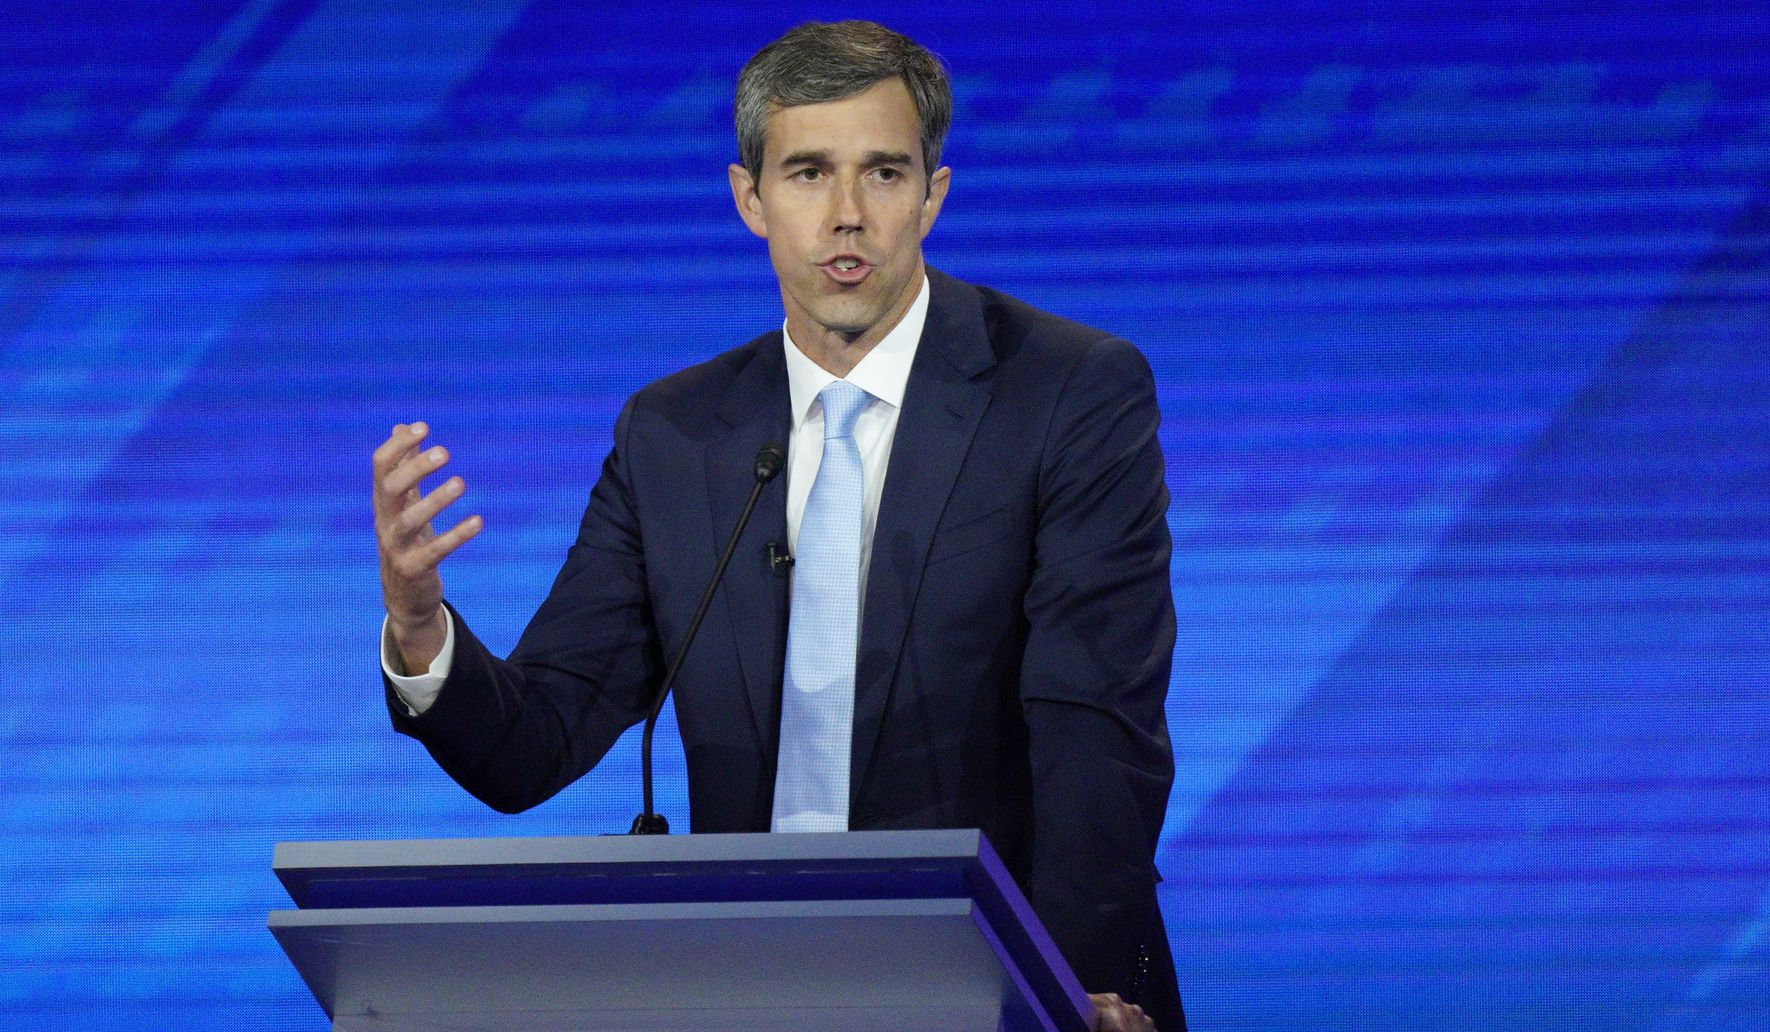 GOP leaders take aim at Beto O'Rourke's call for mandatory AR-15 buyback